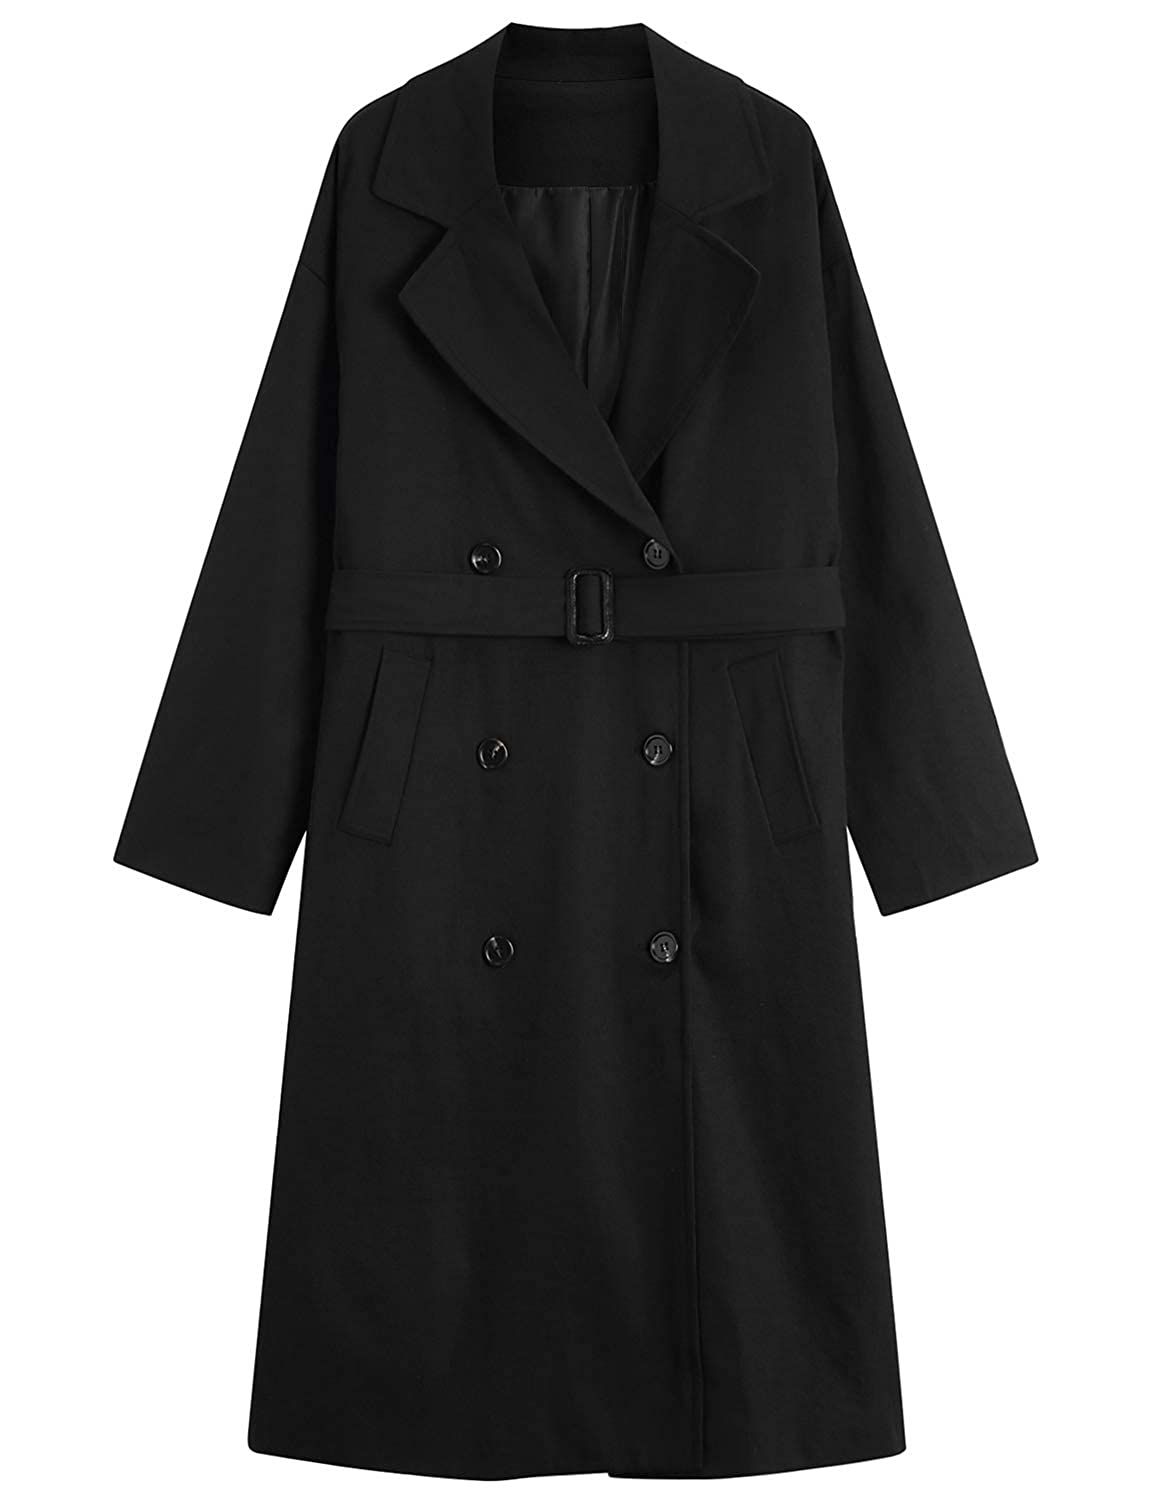 1940s Coats & Jackets Fashion History MOCRIS Trench Coats for Women Double-Breasted Mid-Length Overcoat Windbreaker with Belt Windbreaker $39.99 AT vintagedancer.com